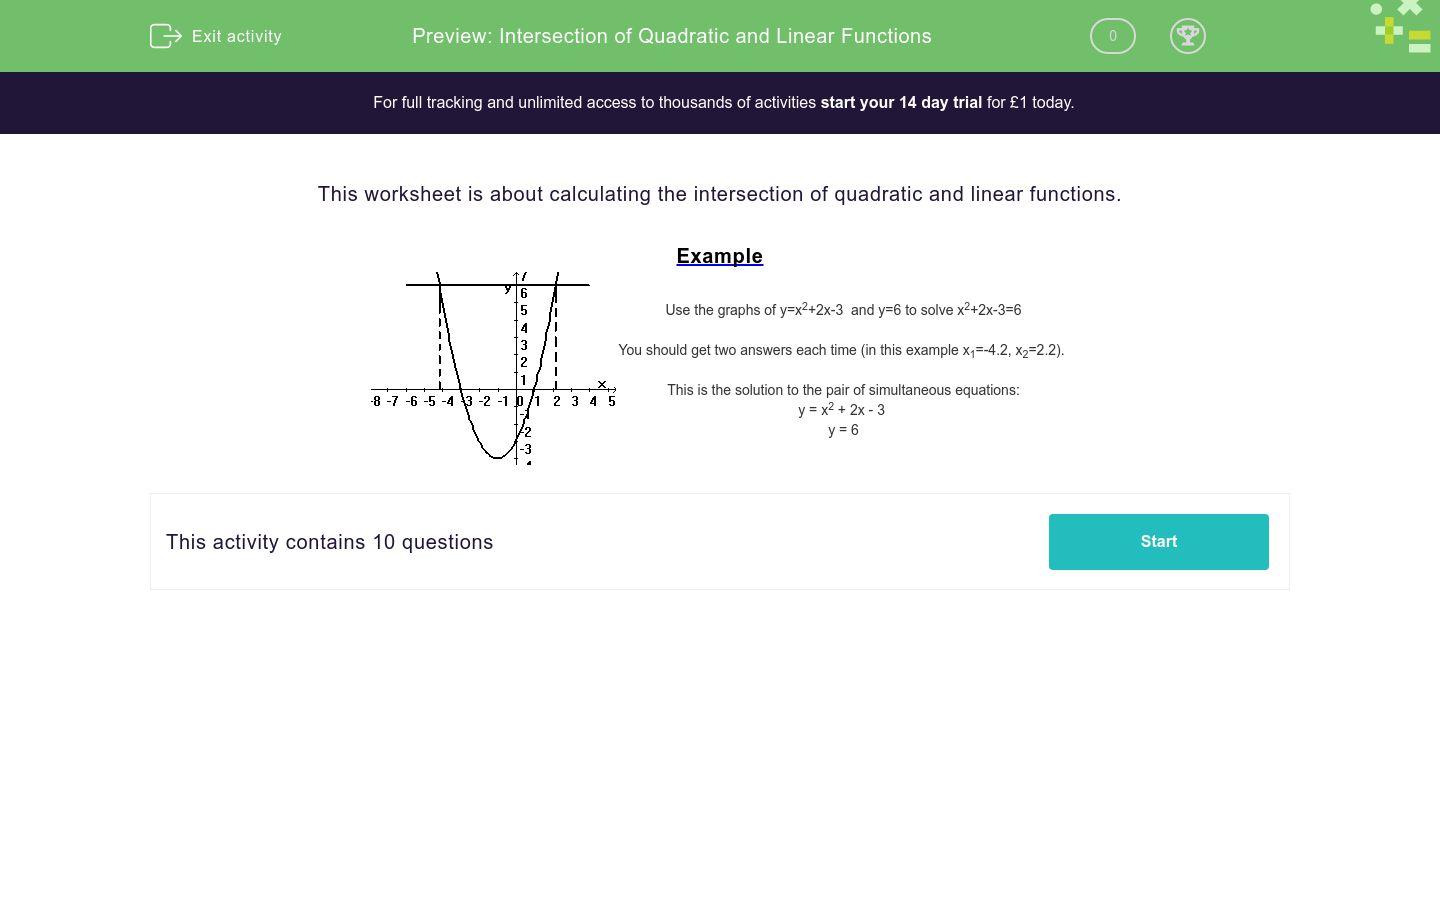 'Intersection of Quadratic and Linear Functions' worksheet